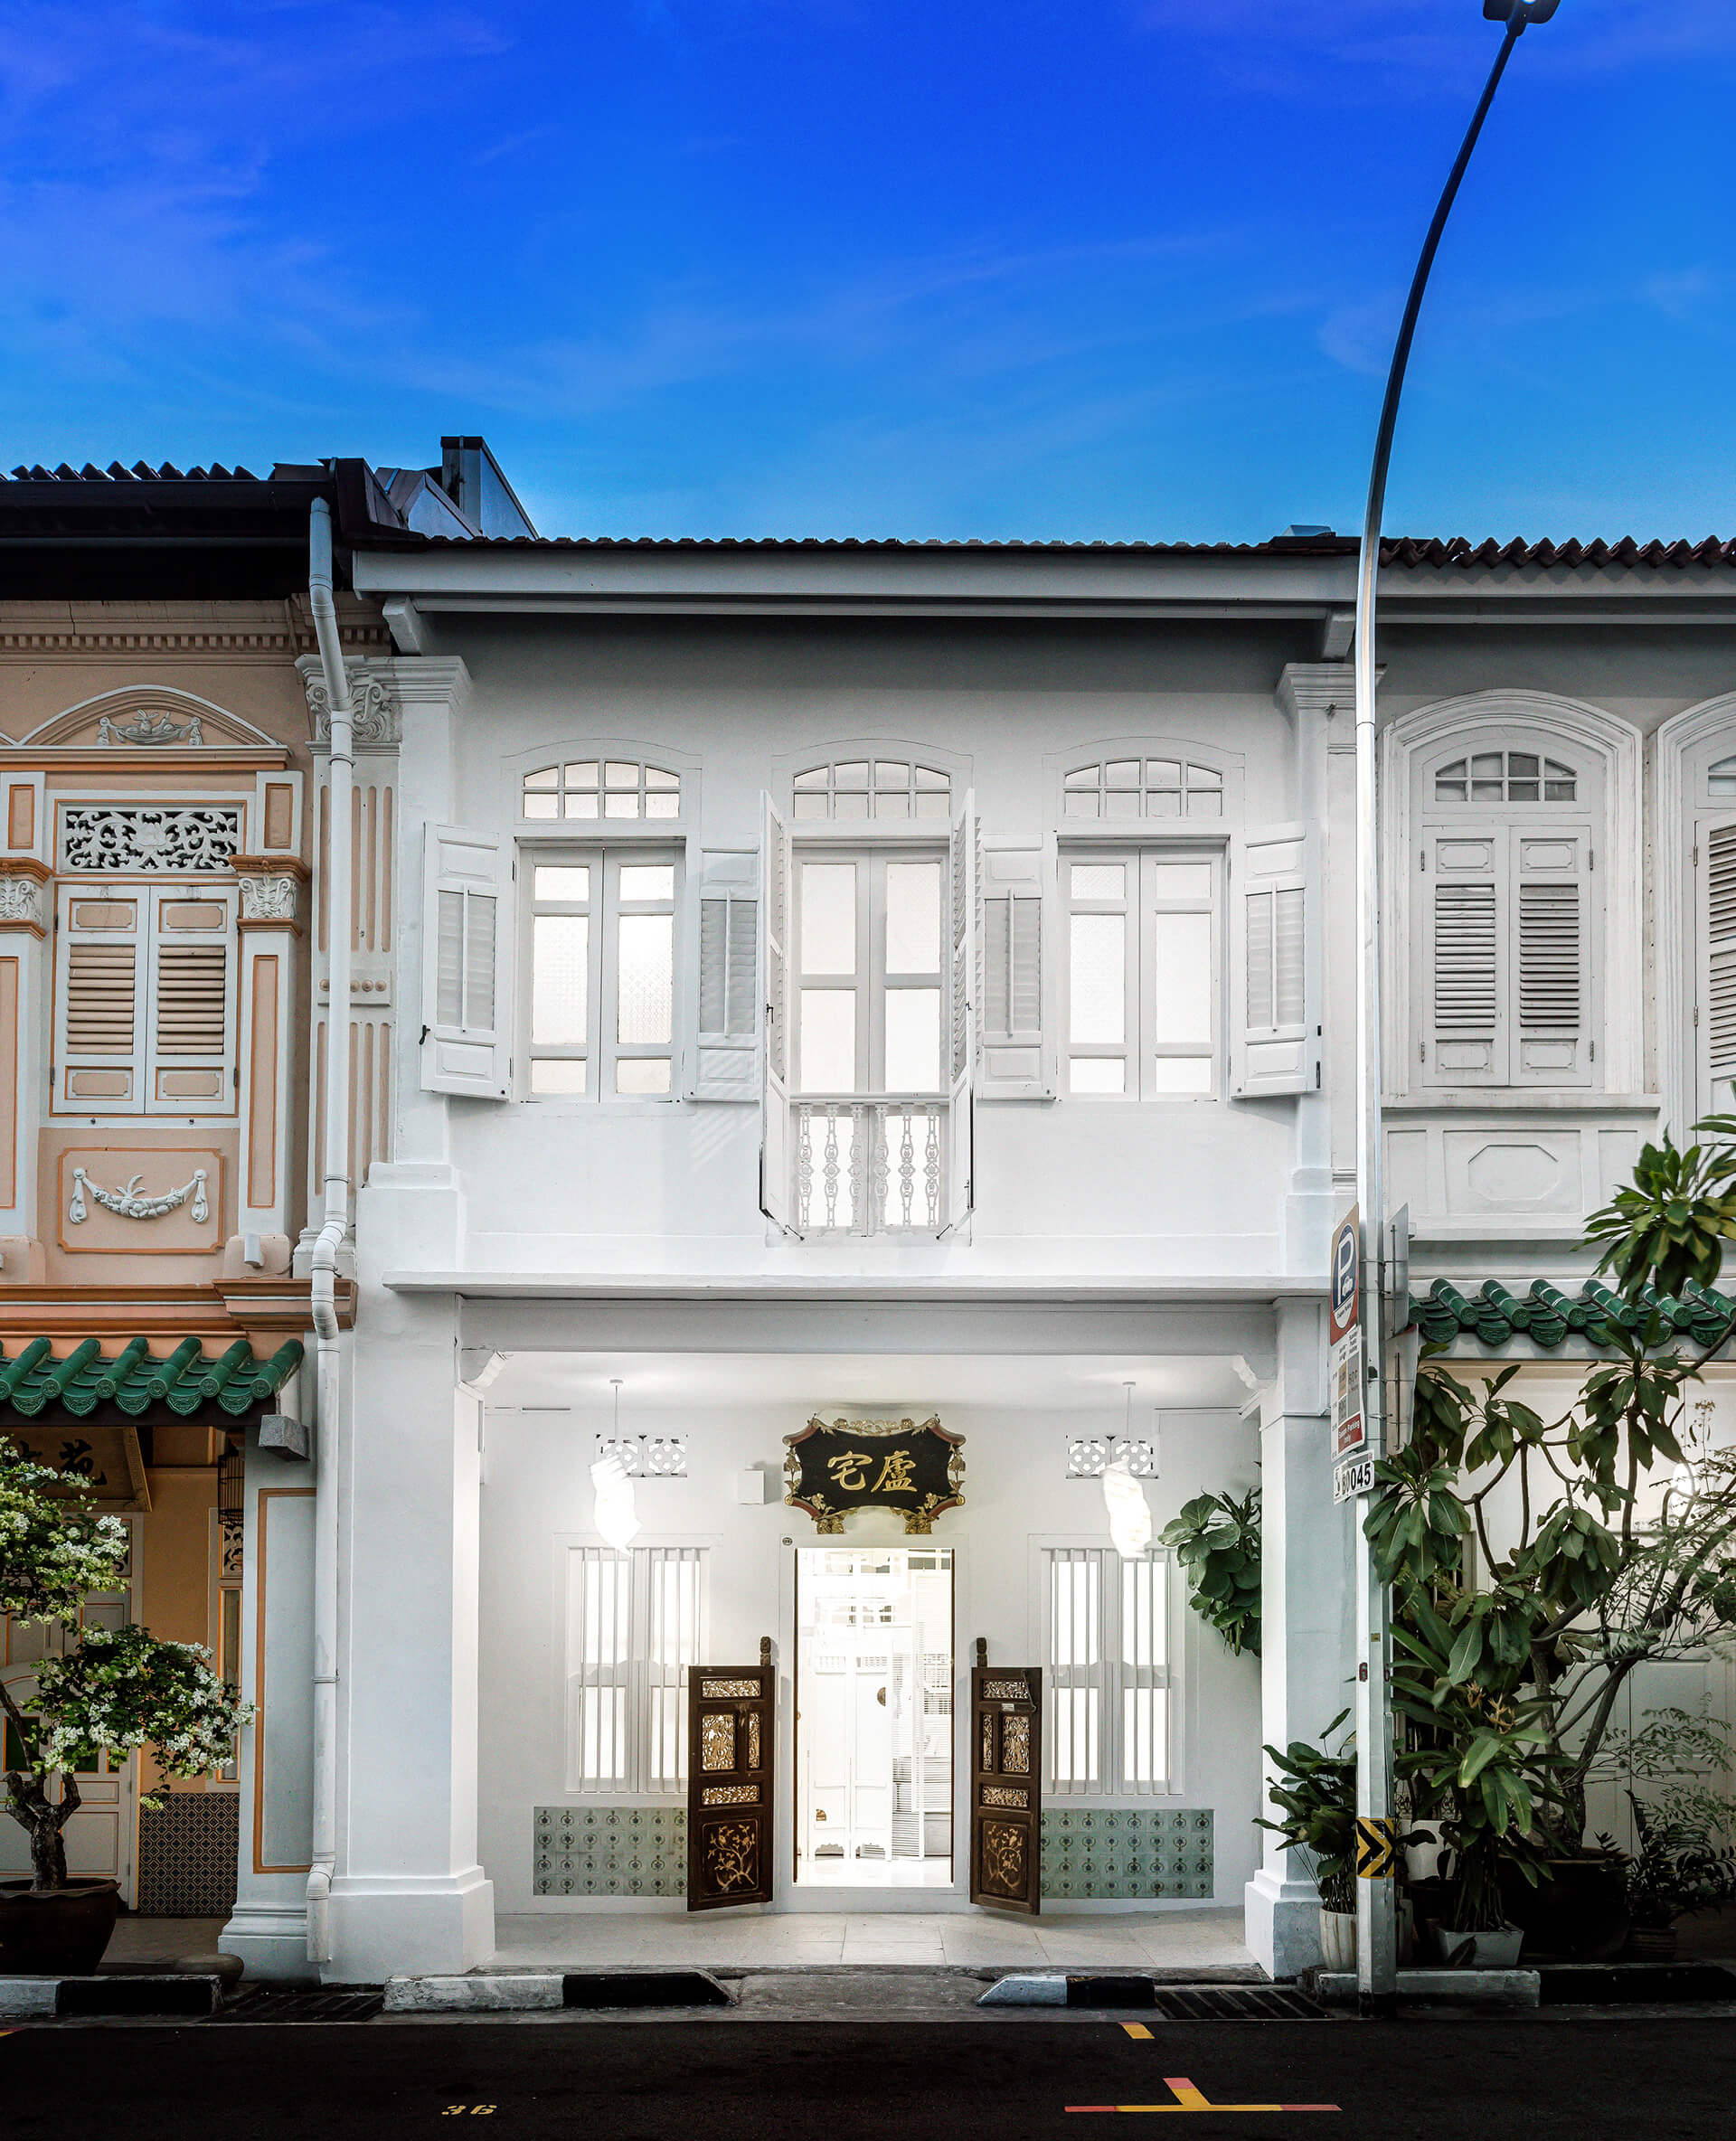 The Canvas House – Façade | Canvas House in Singapore by Ministry of Design | STIRworld